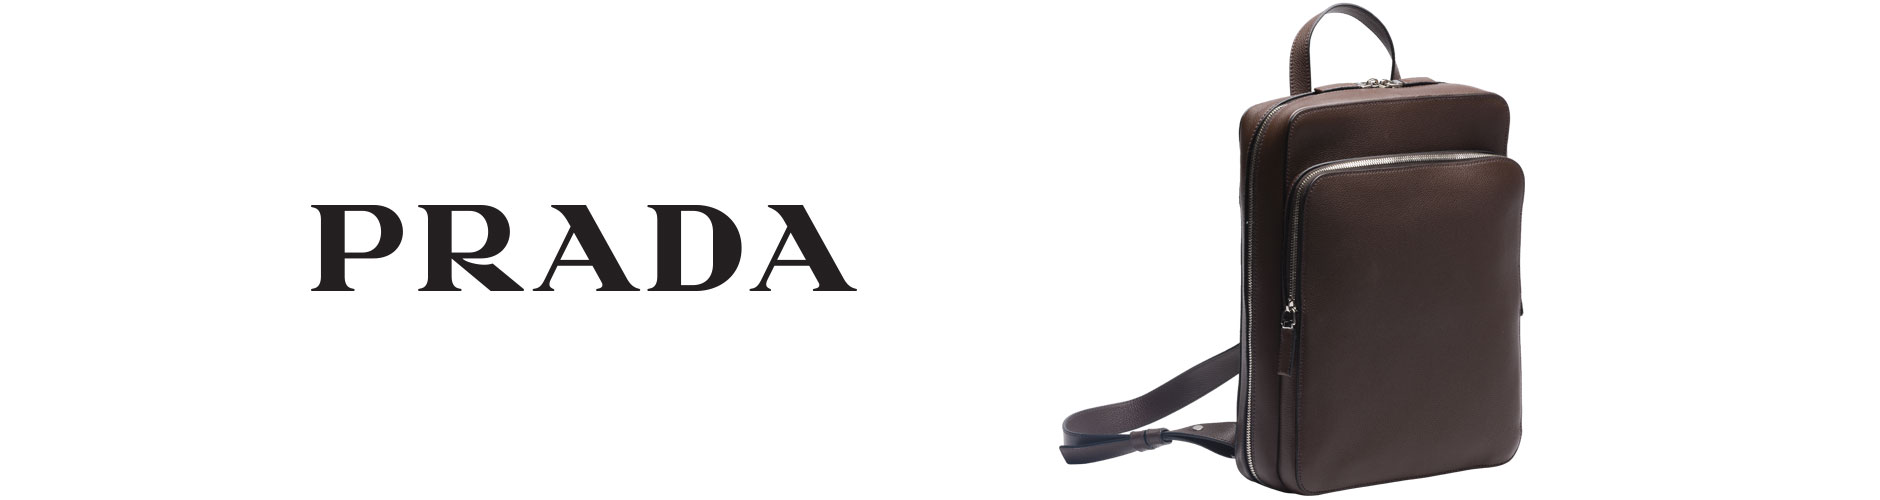 Prada Men's Accessories